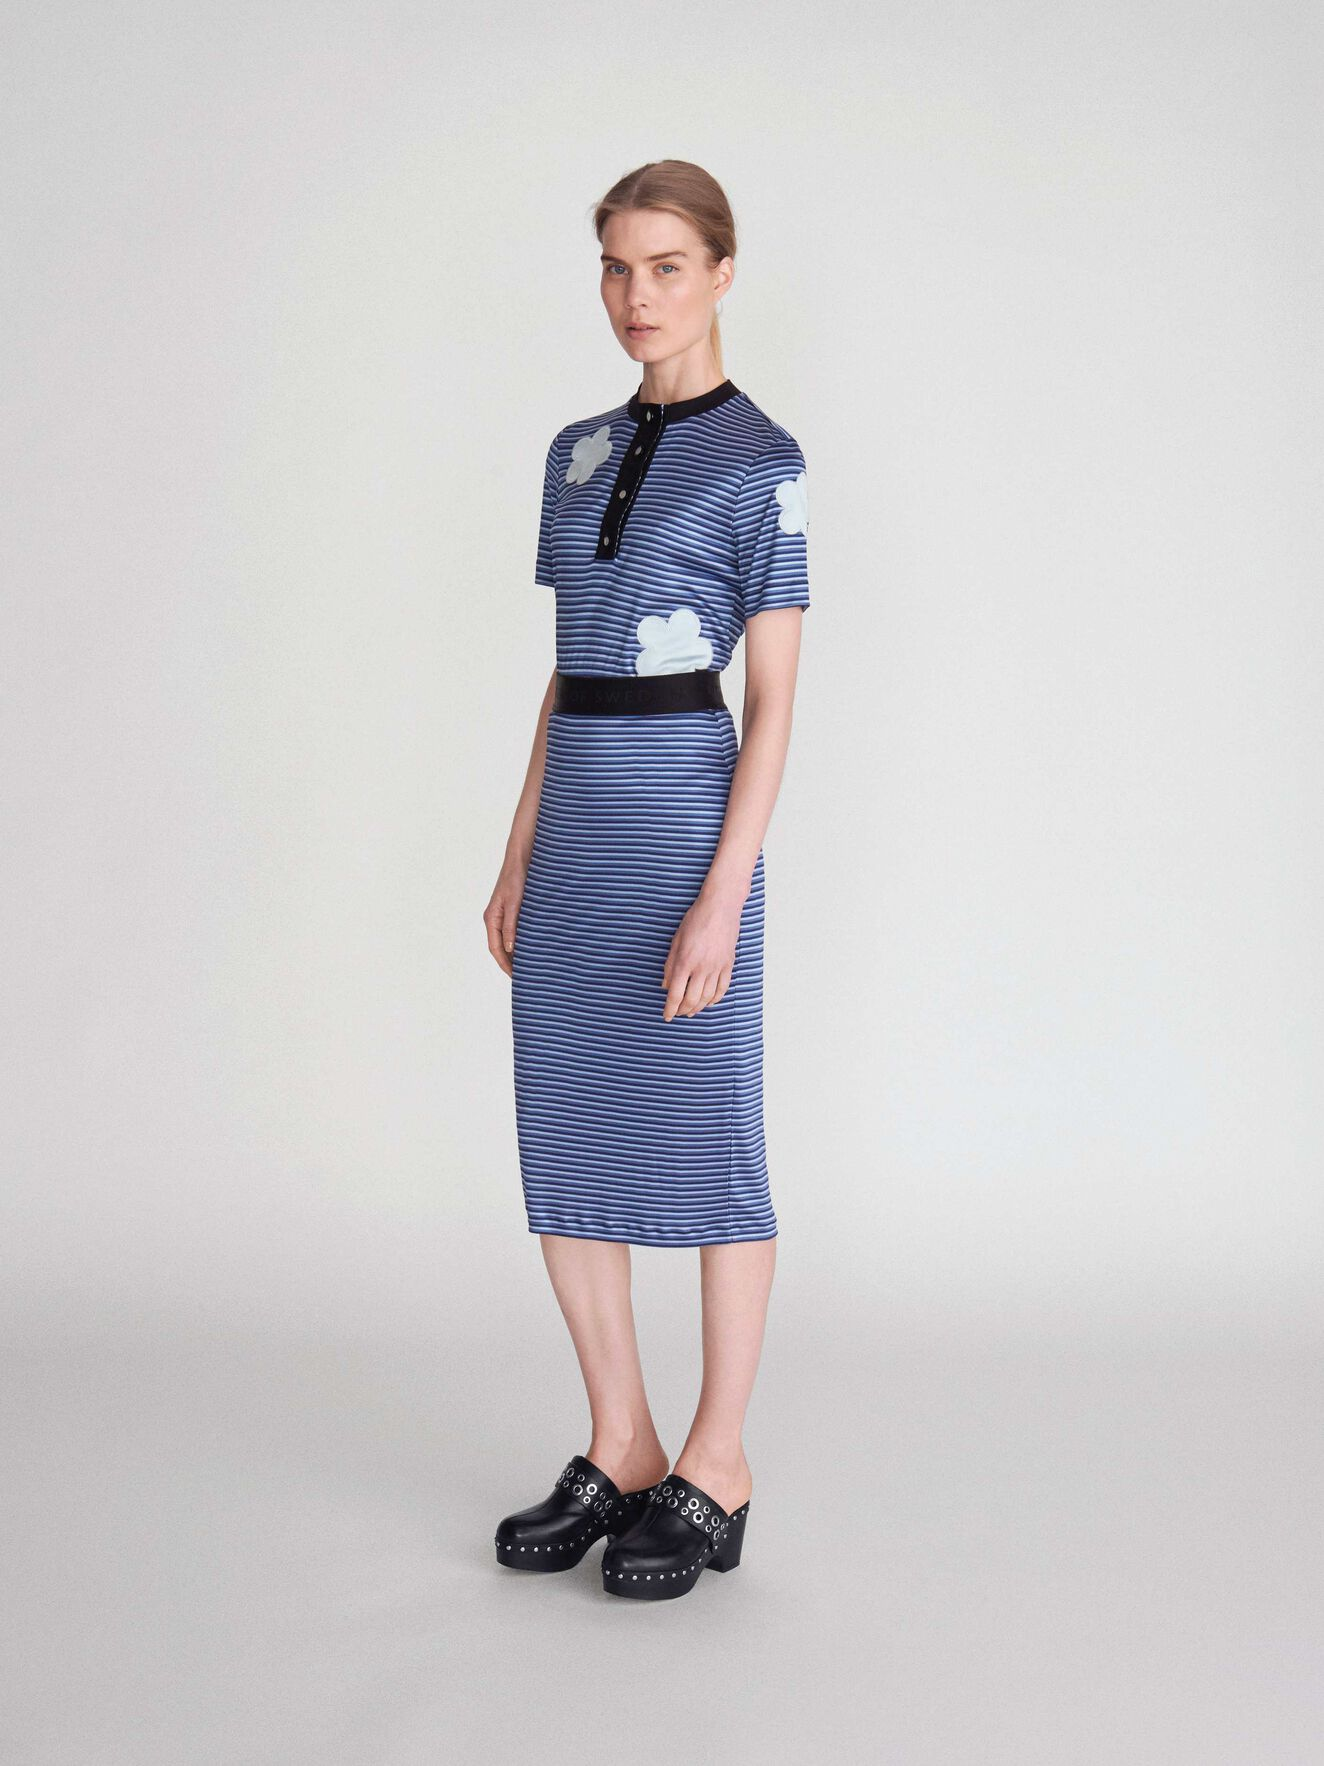 Jacelyn S Skirt in Soft blue from Tiger of Sweden